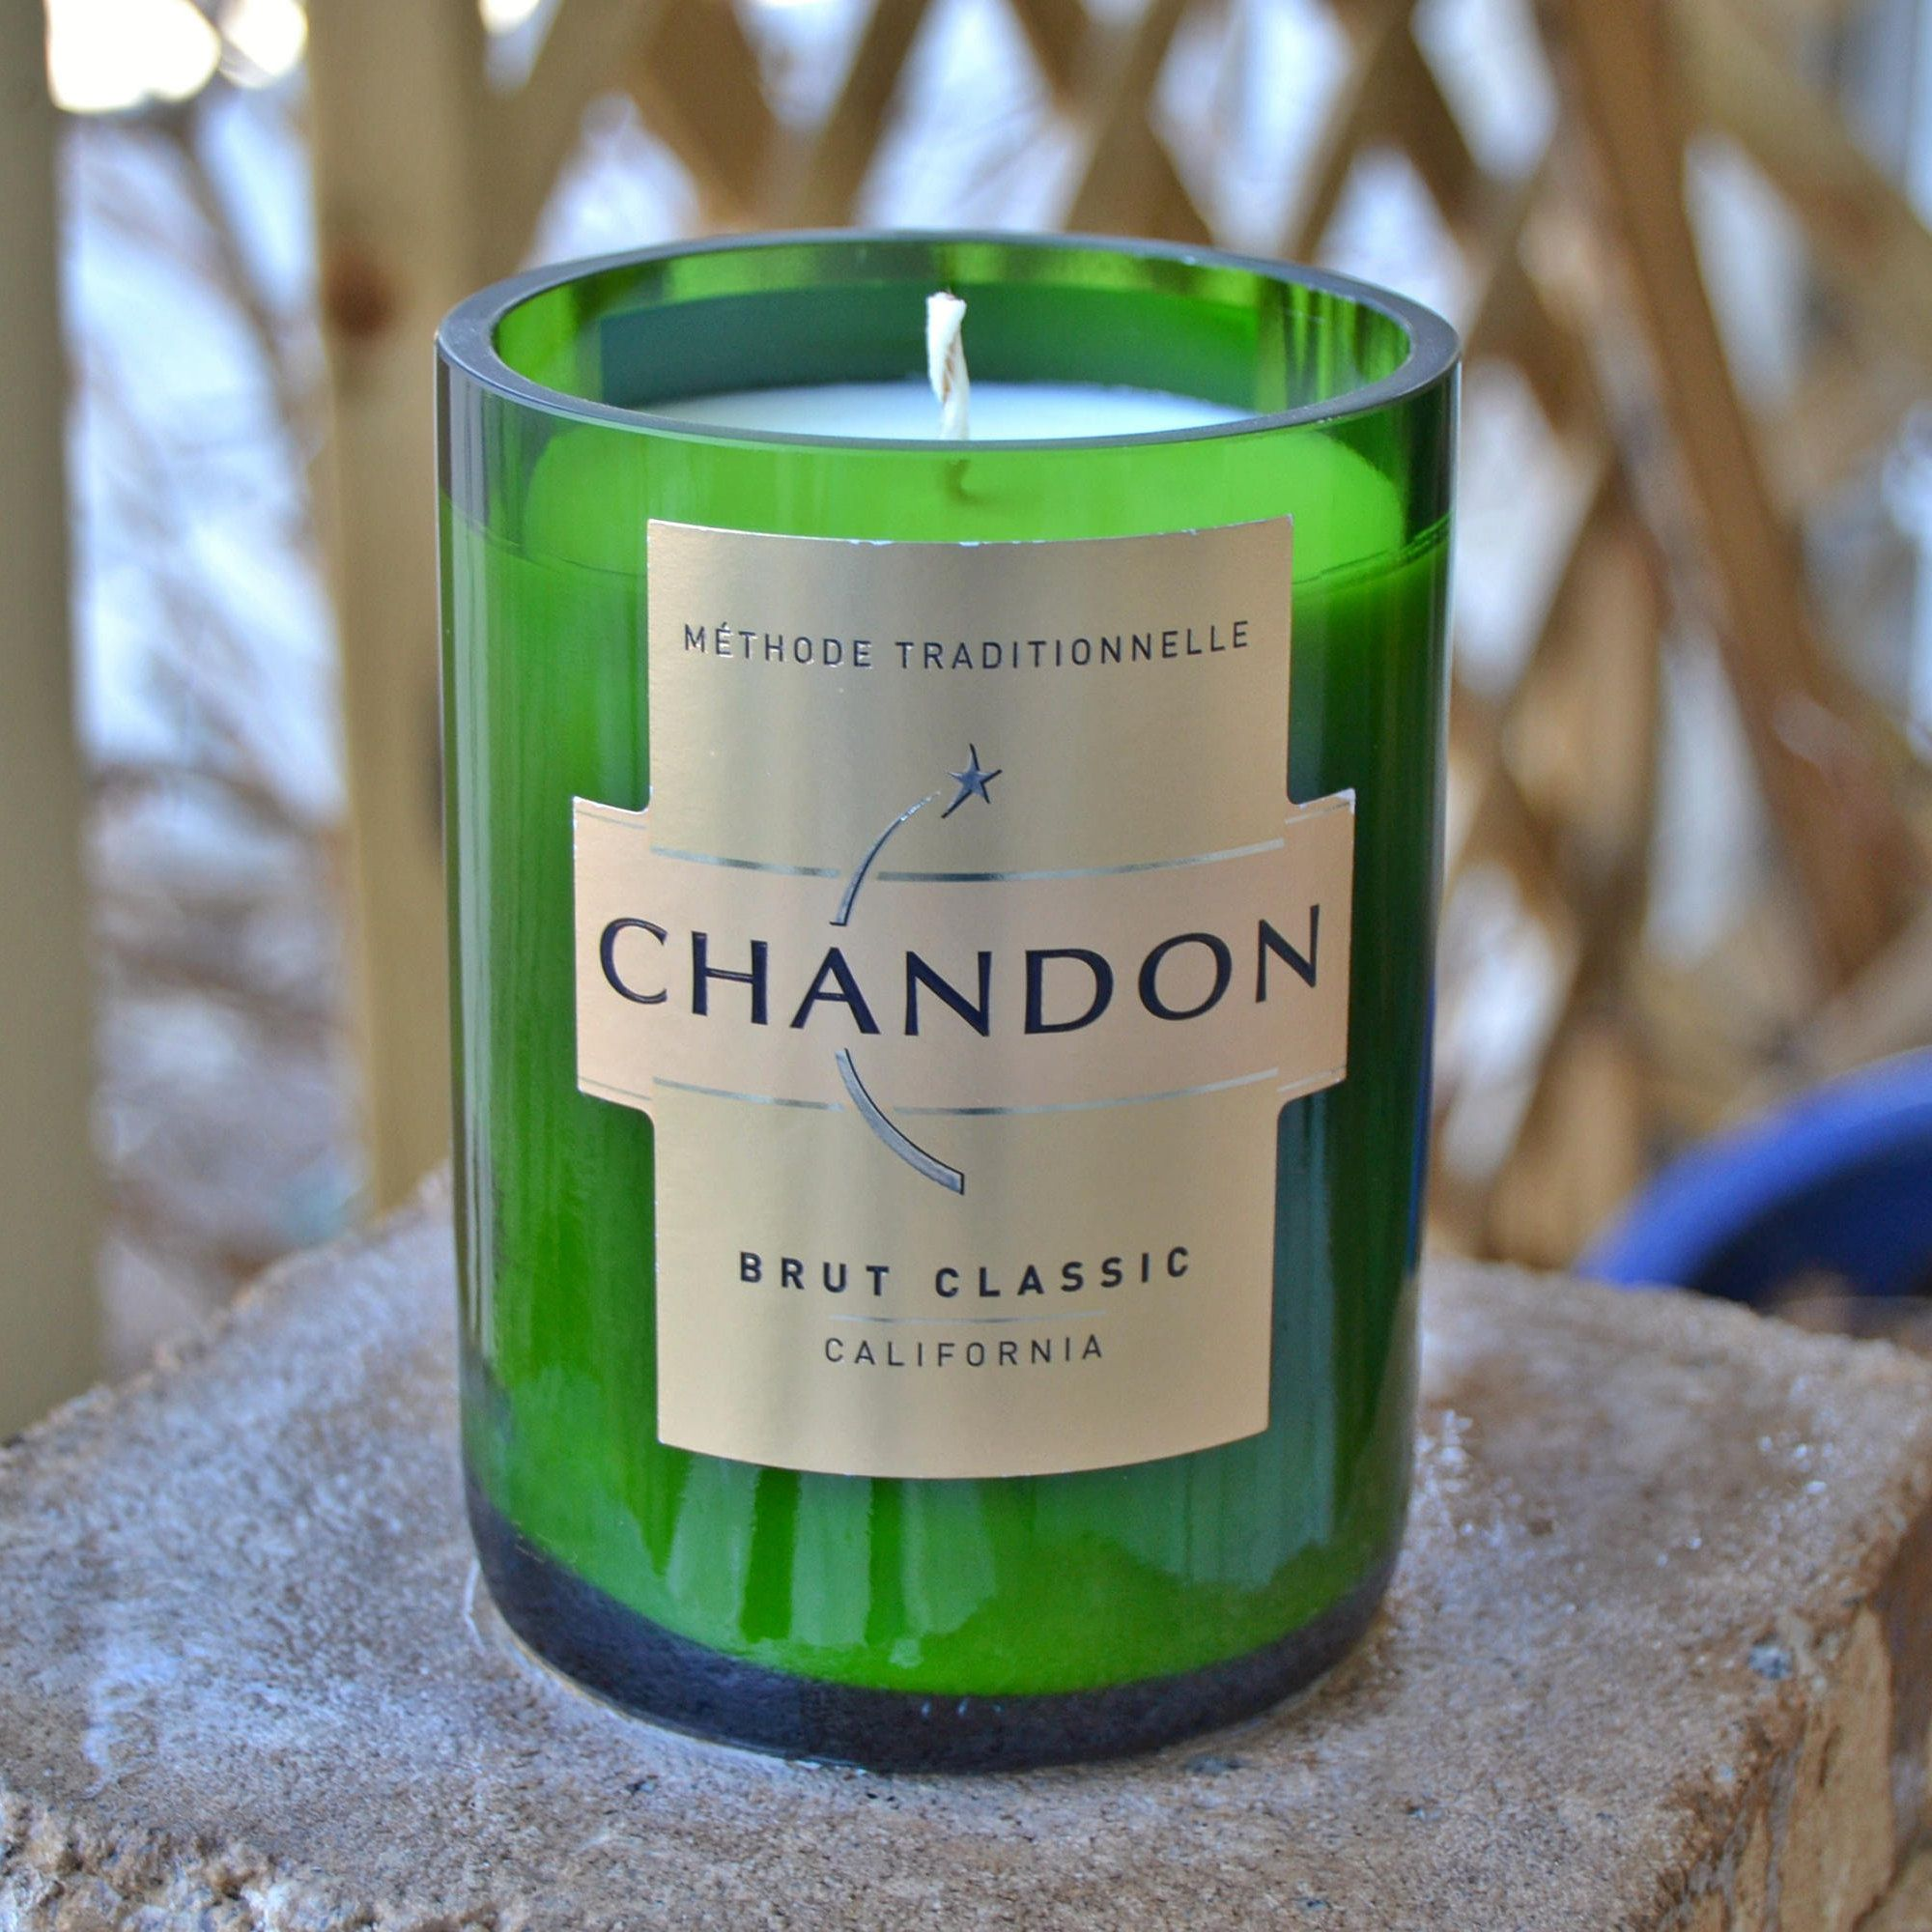 Chandon Champagne Bottle Candle Made With Soy Wax